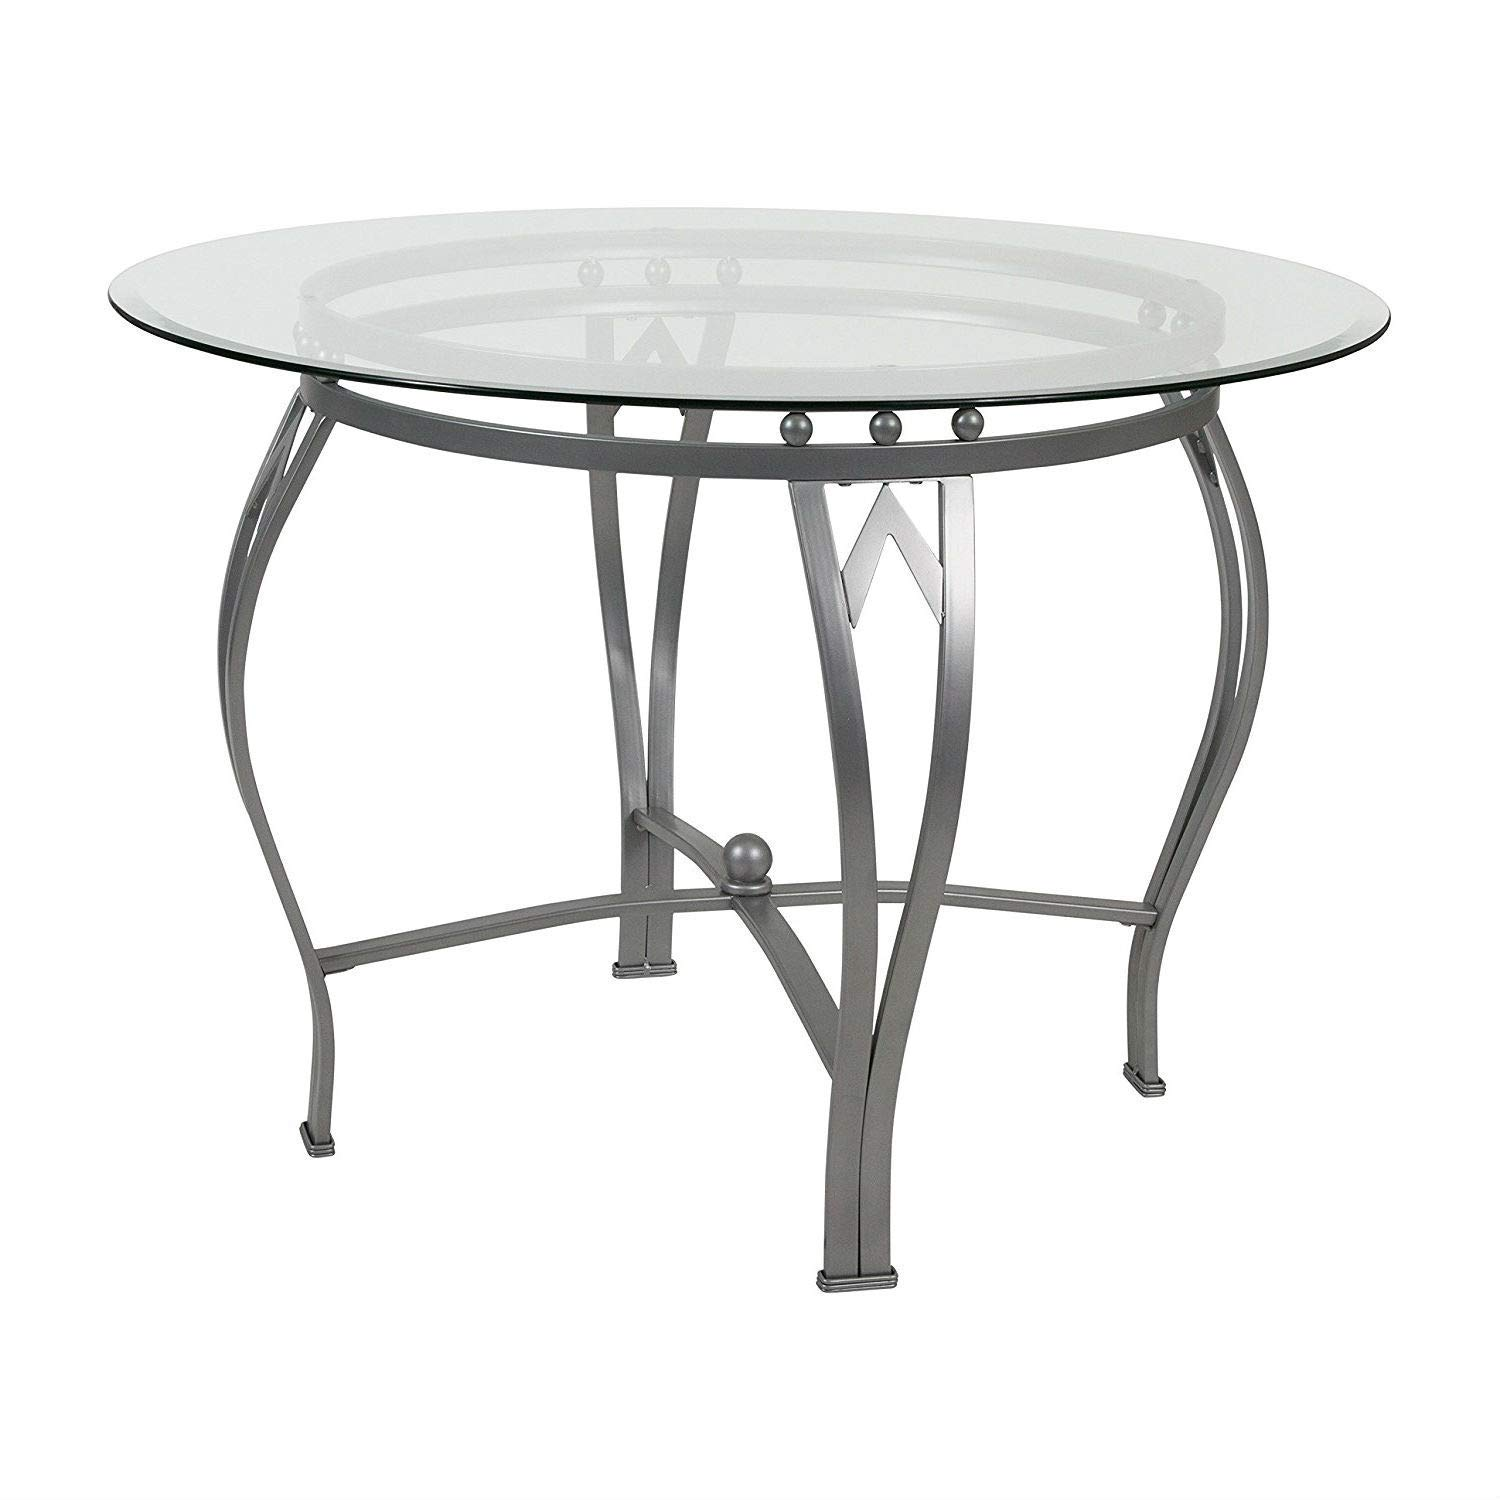 BeUniqueToday Round 42-inch Clear Tempered Glass Dining Table with Silver Frame, Glass Dining Table with Silver Frame That Will Add an Elegant Aspect to Your Eat-in Kitchen or Dining Room